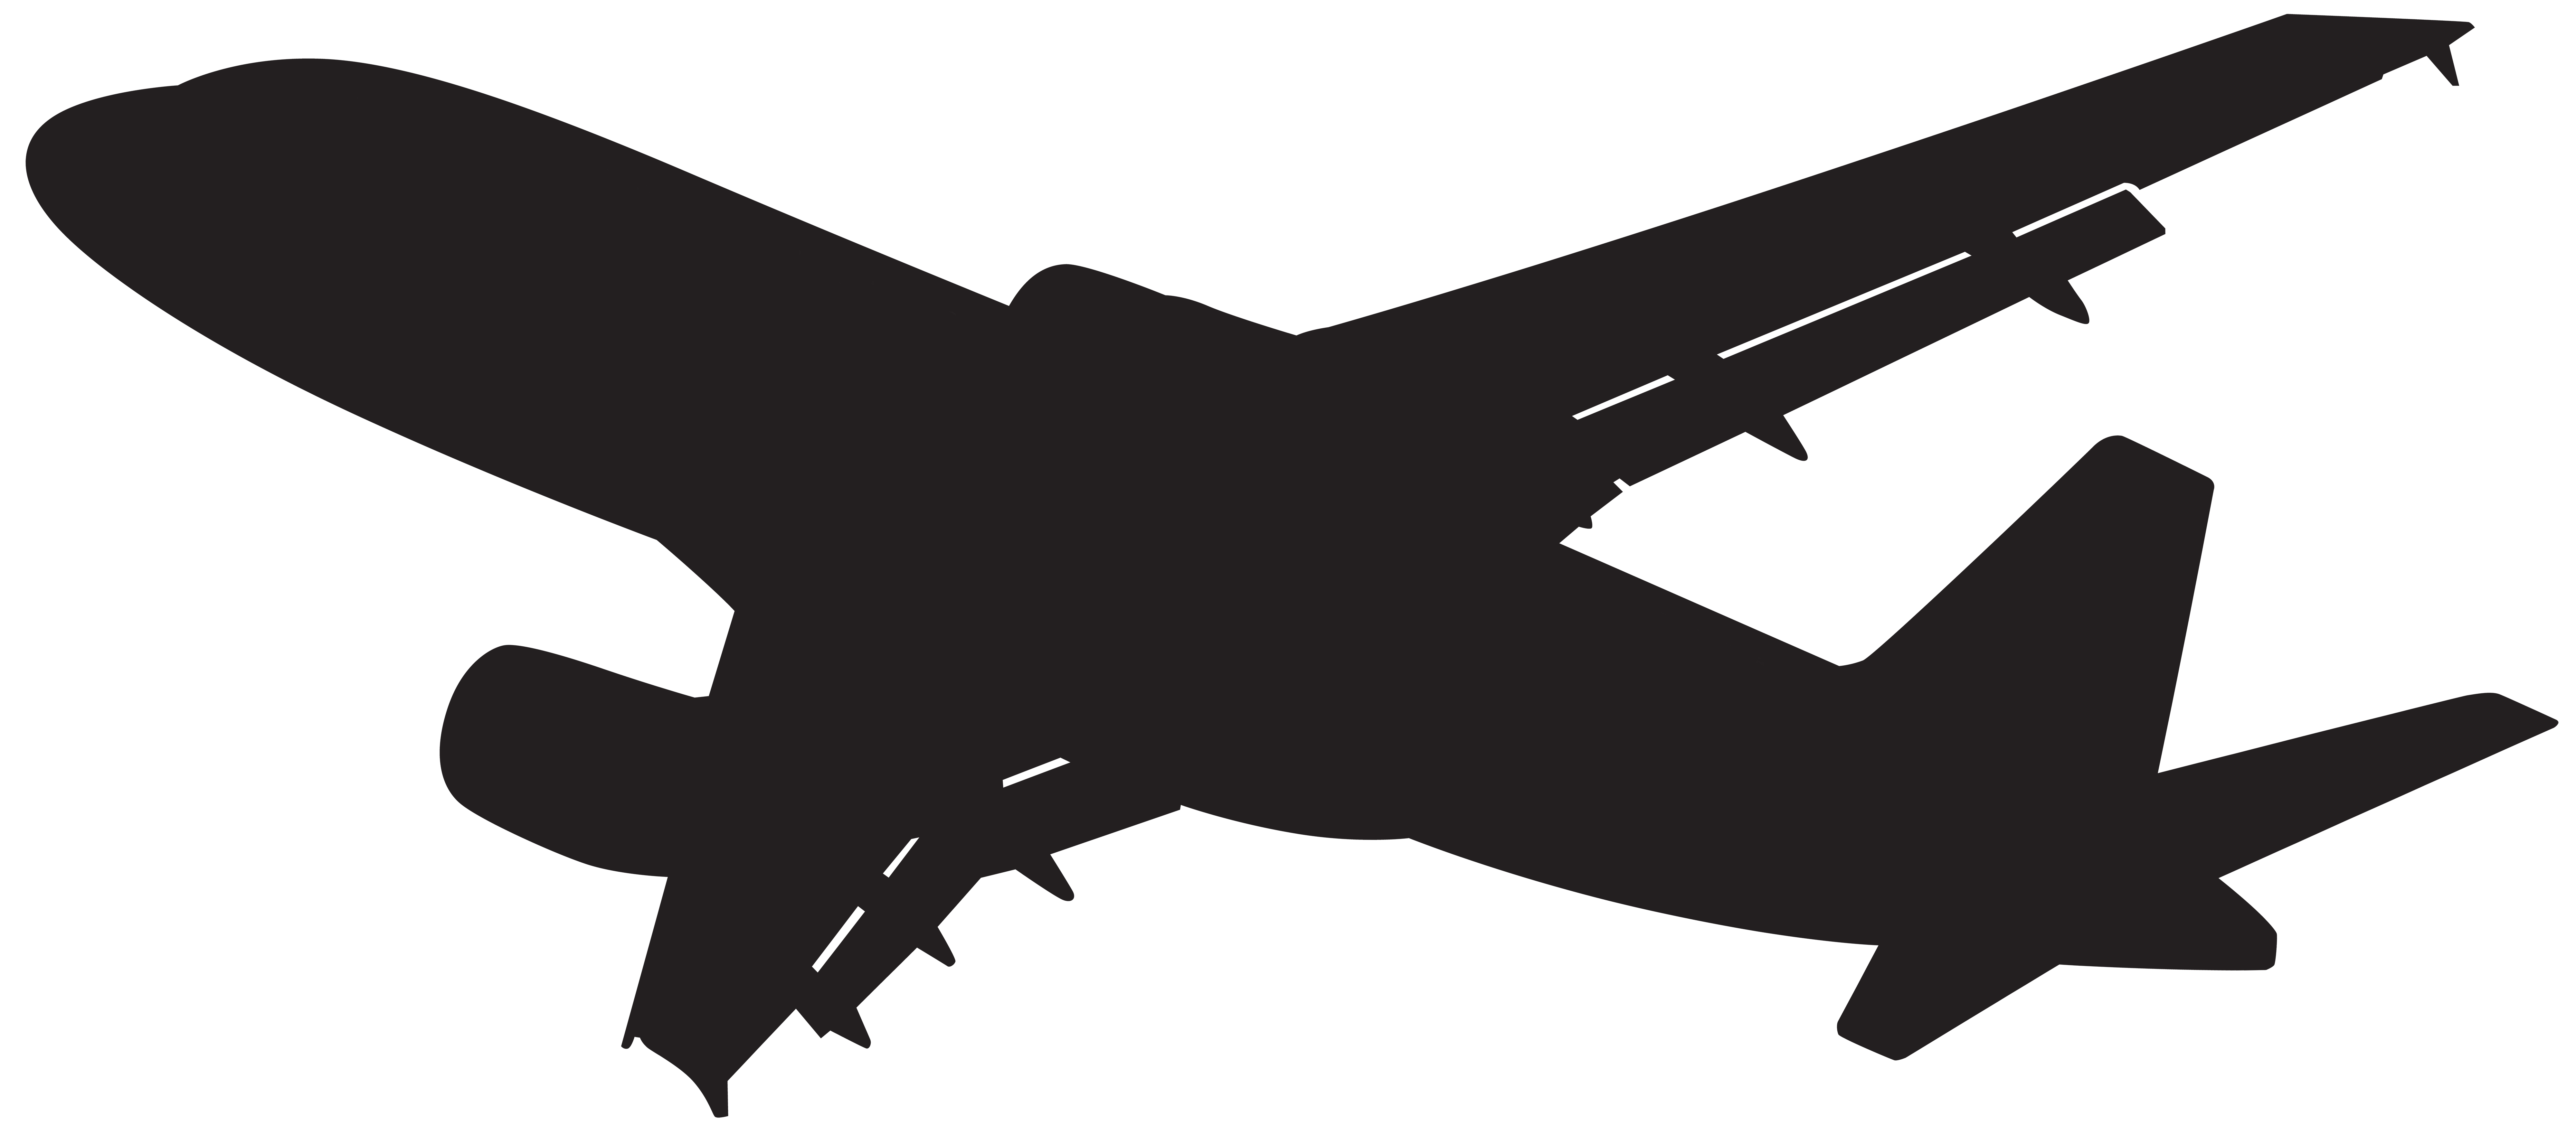 Plane silhouette clip art. Clipart png airplane